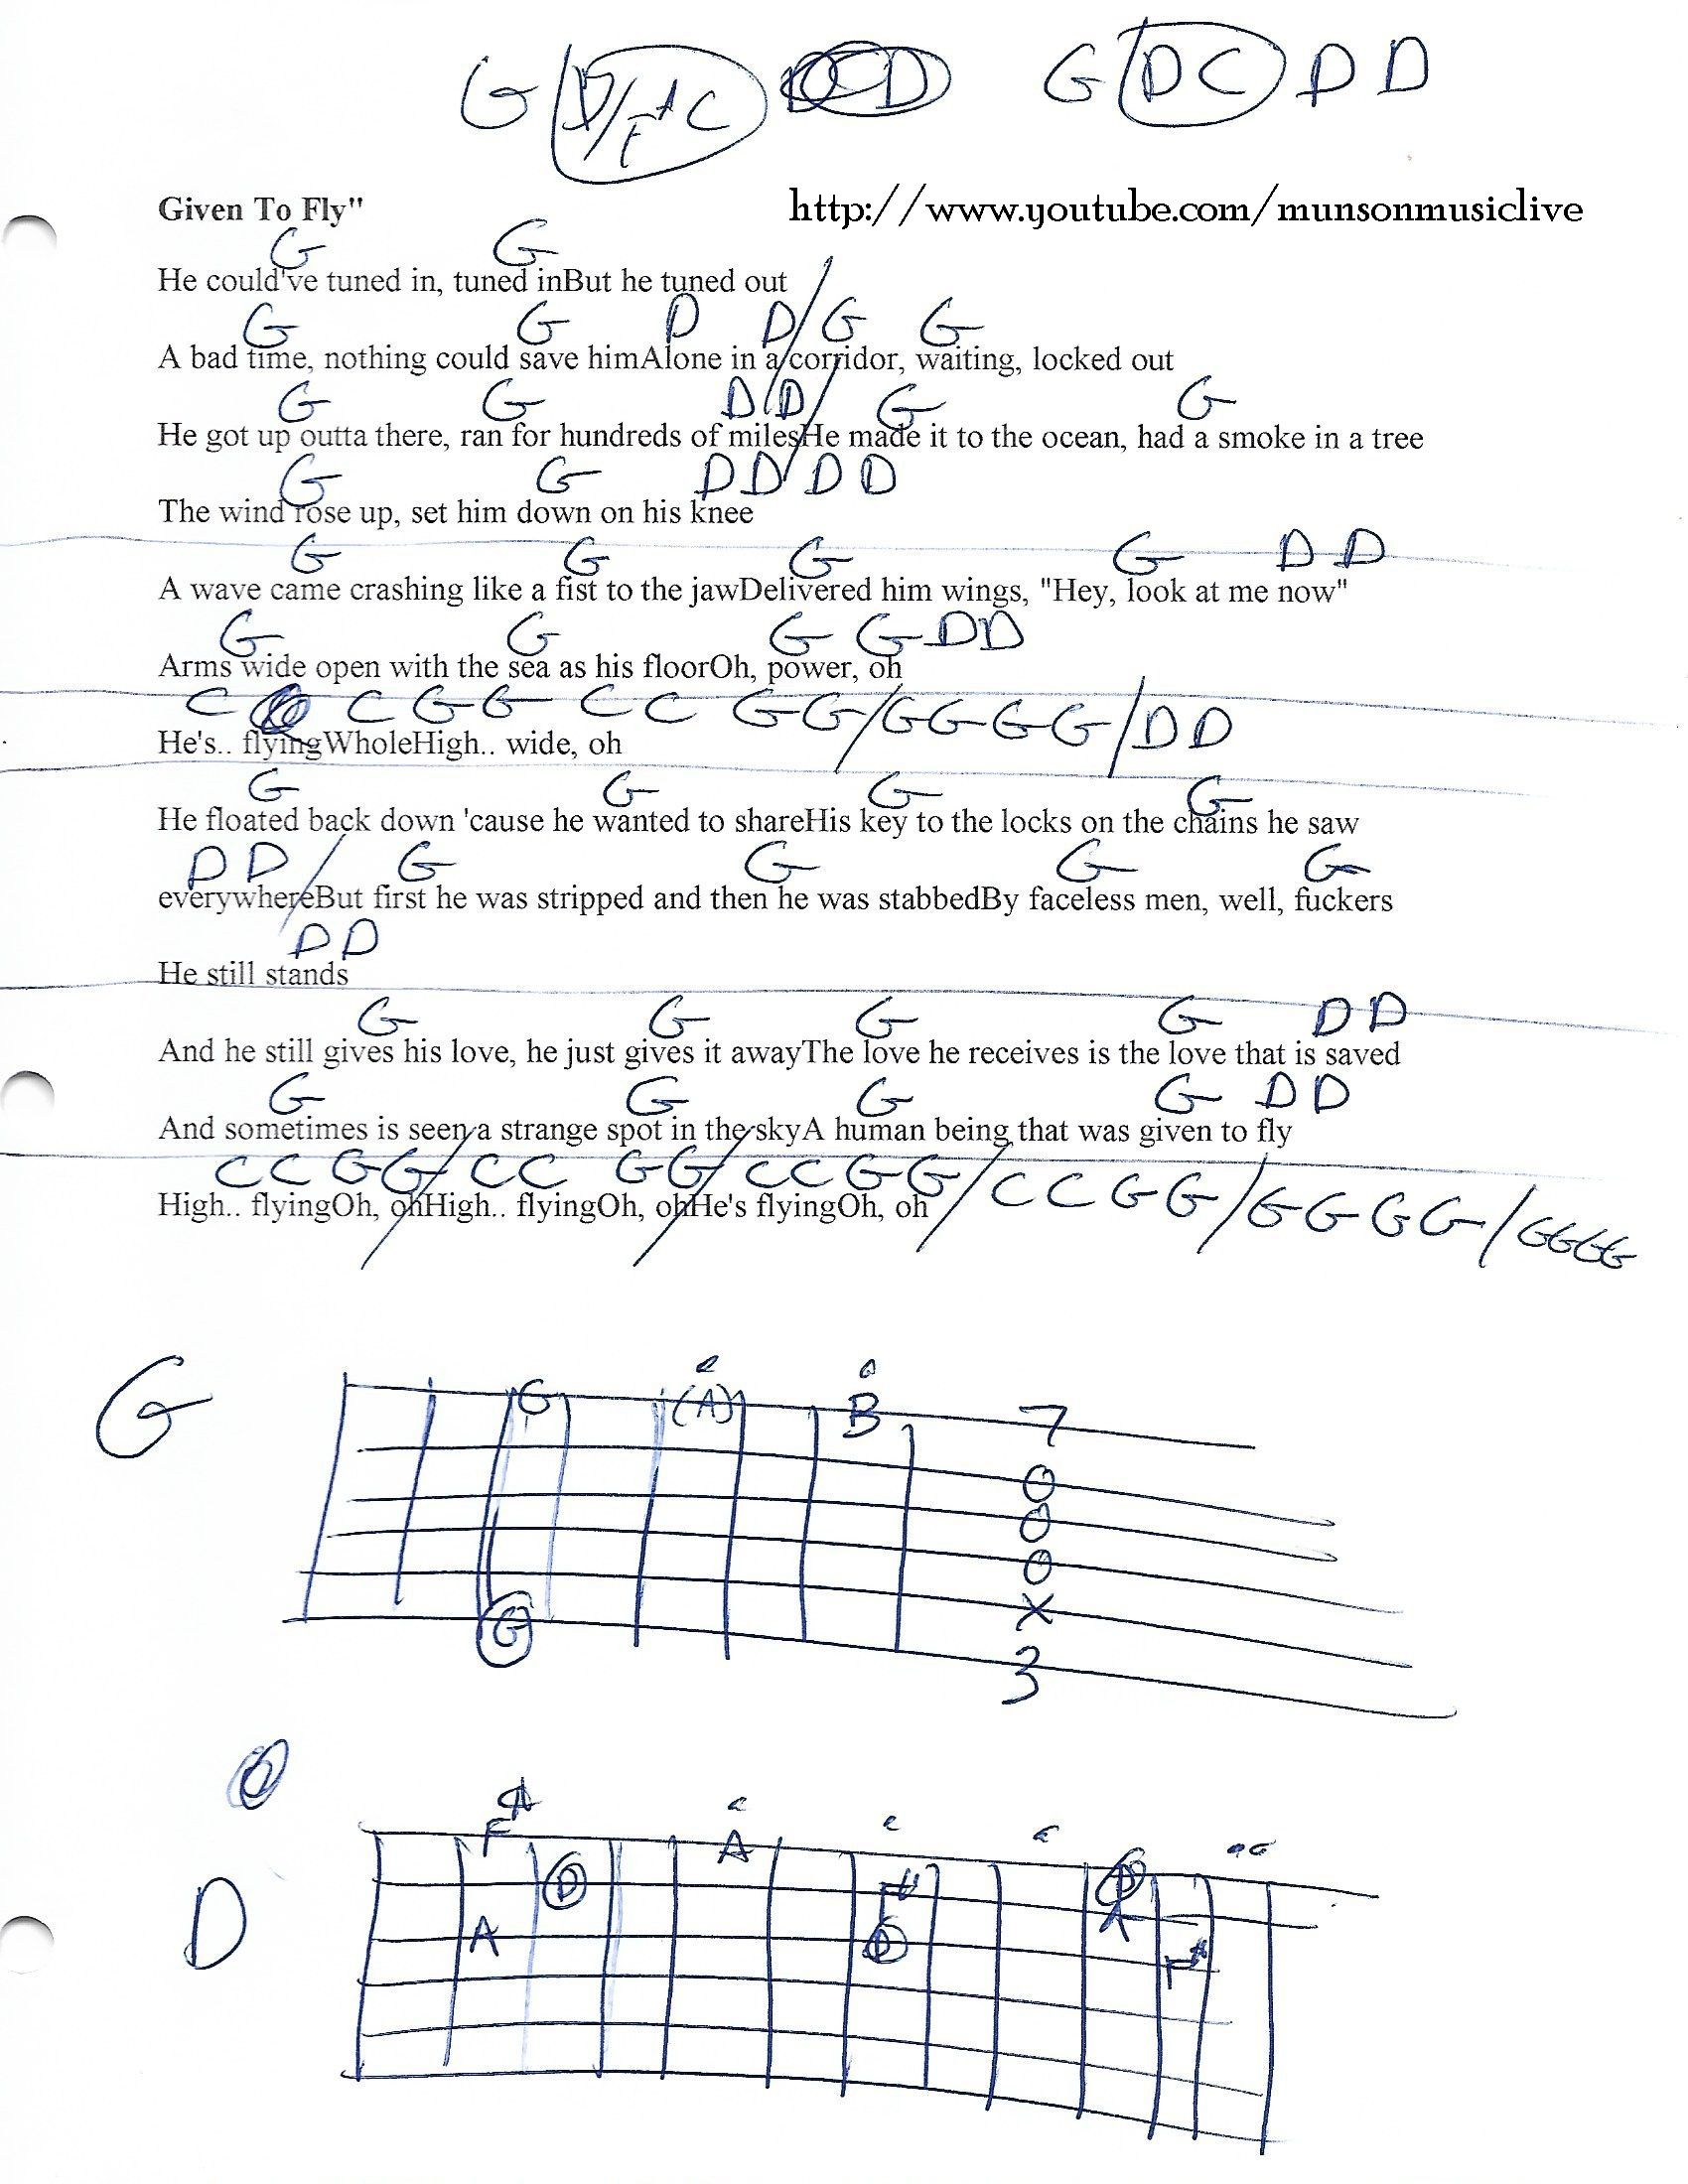 Given To Fly Pearl Jam Guitar Chord Chart Guitar Lesson Chord